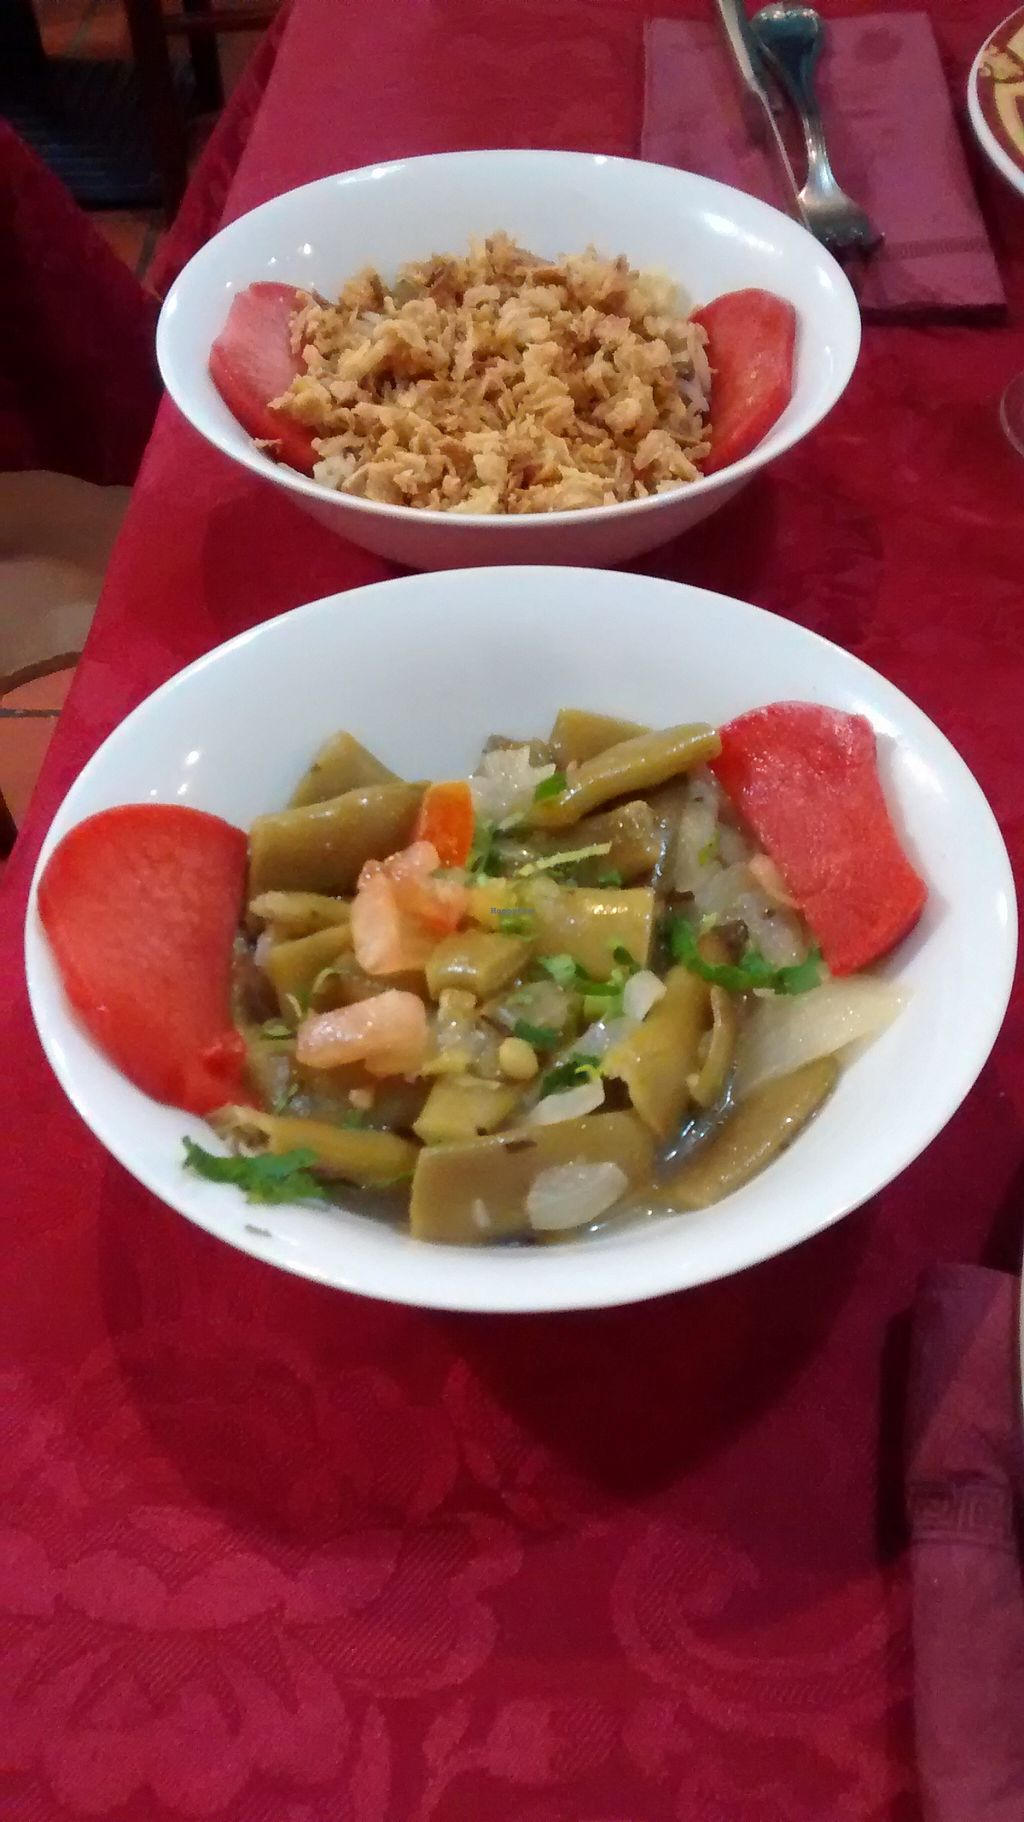 "Photo of Le Cedre  by <a href=""/members/profile/JonJon"">JonJon</a> <br/>Hot dishes (rice, vegetables, lentils) <br/> December 5, 2015  - <a href='/contact/abuse/image/66577/127275'>Report</a>"